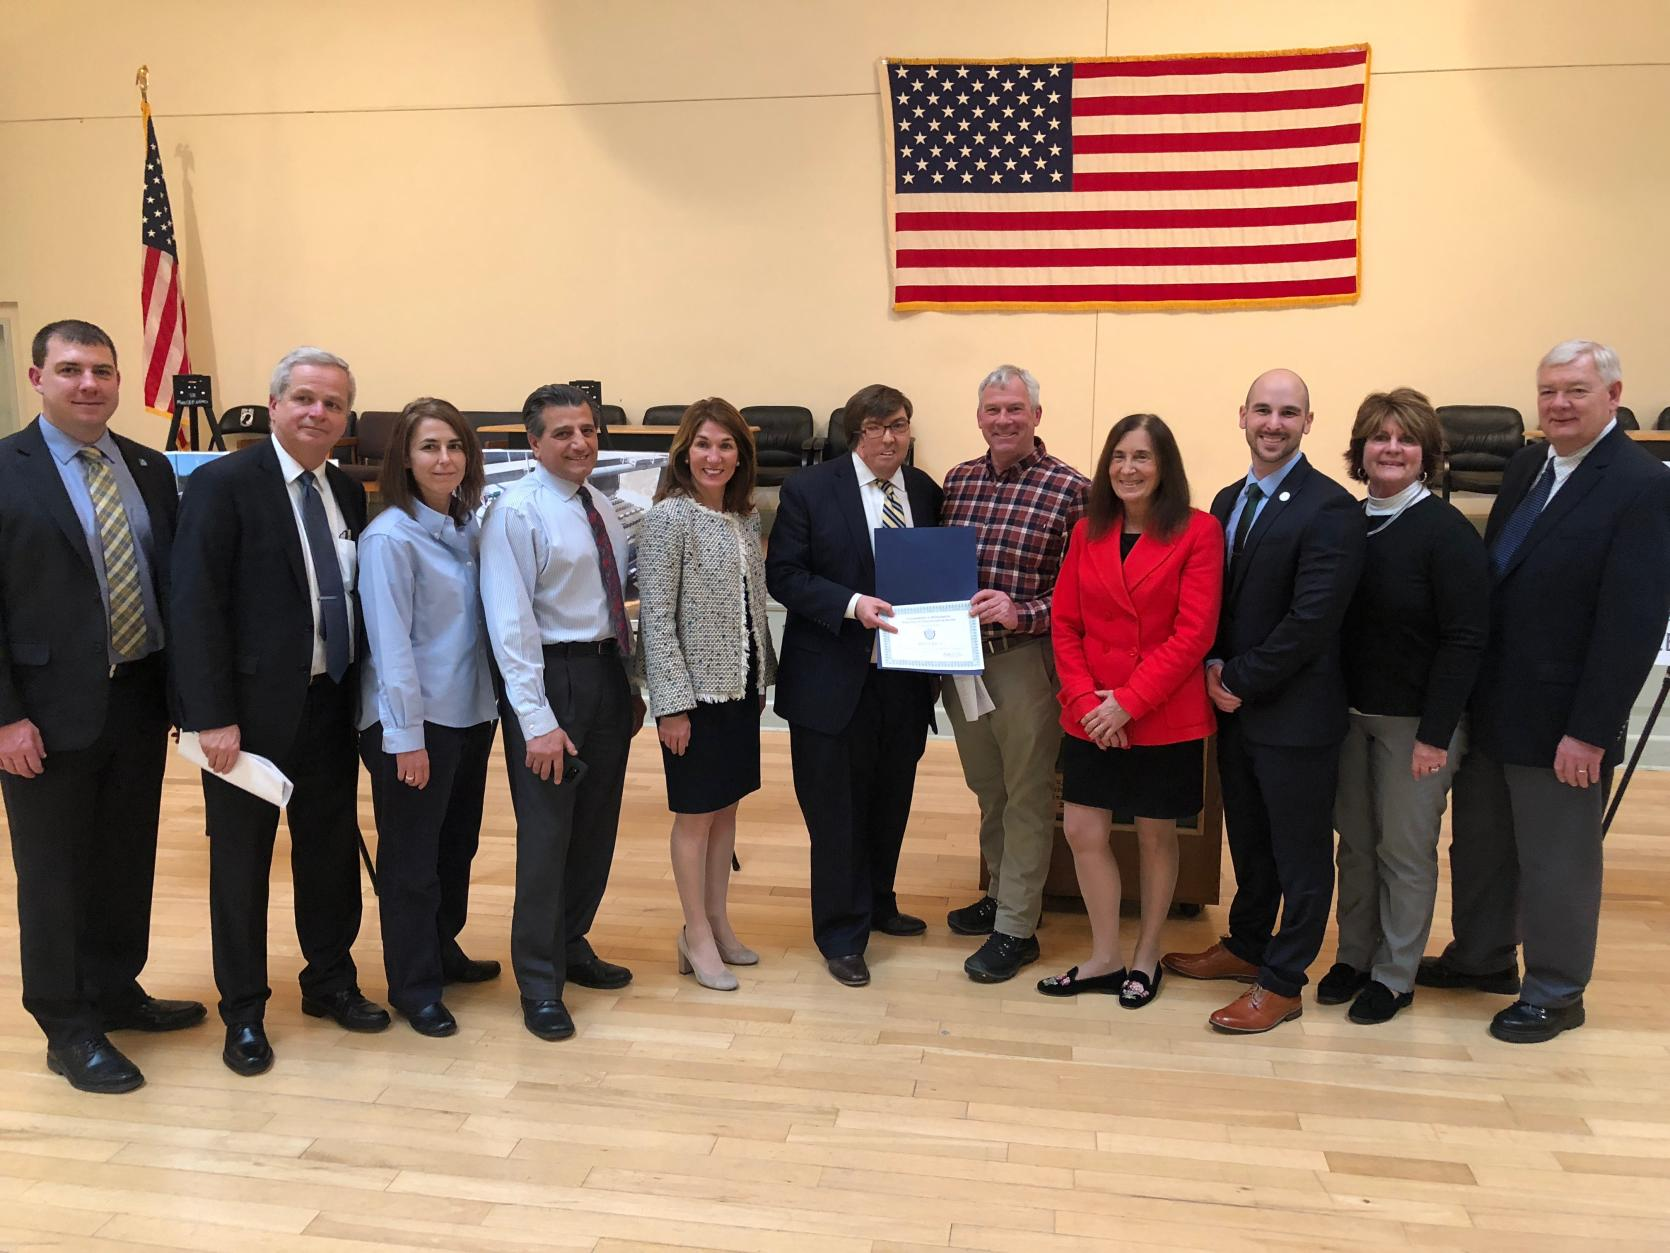 Billerica officials receive nearly $44 million in financing for four local water projects from Lt. Governor Polito and Treasurer Goldberg.